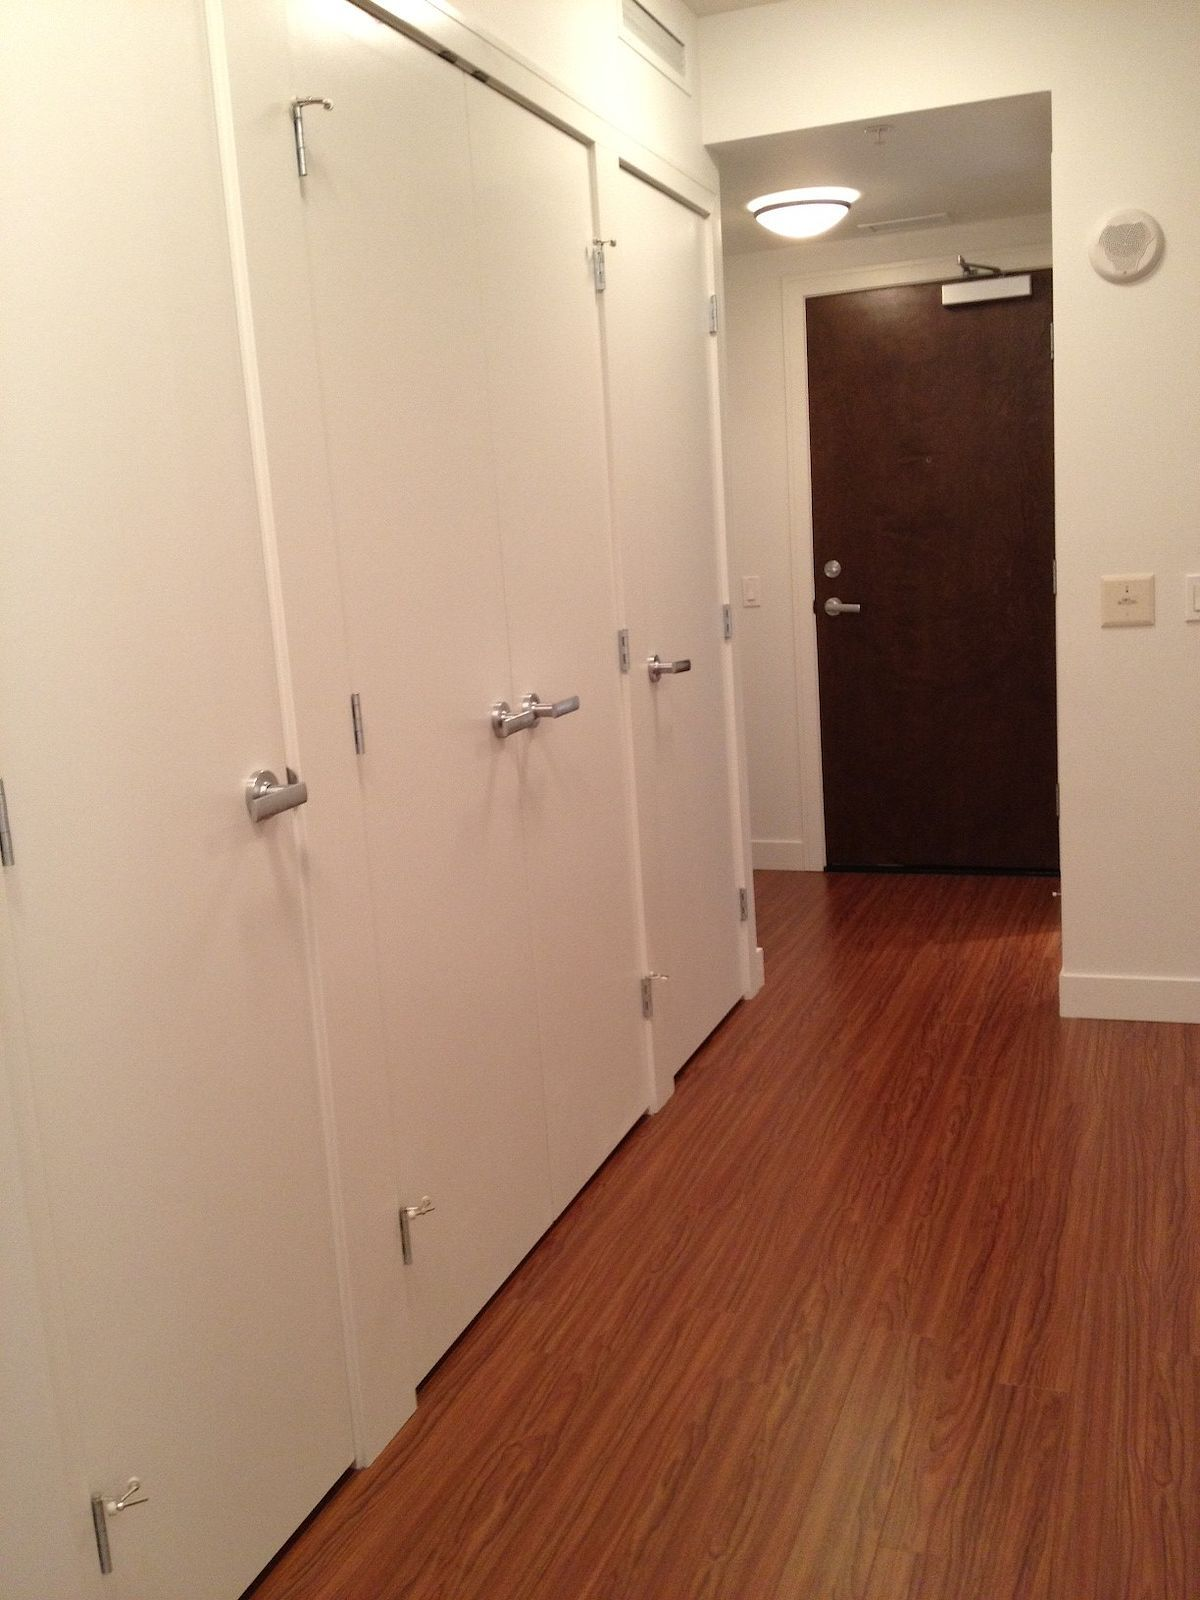 Calgary Eau Claire Apartment For Rent Executive 1 Bedroom In Desired Waterfront Perfect For Live Work And Apartments For Rent Bike Room Tall Cabinet Storage